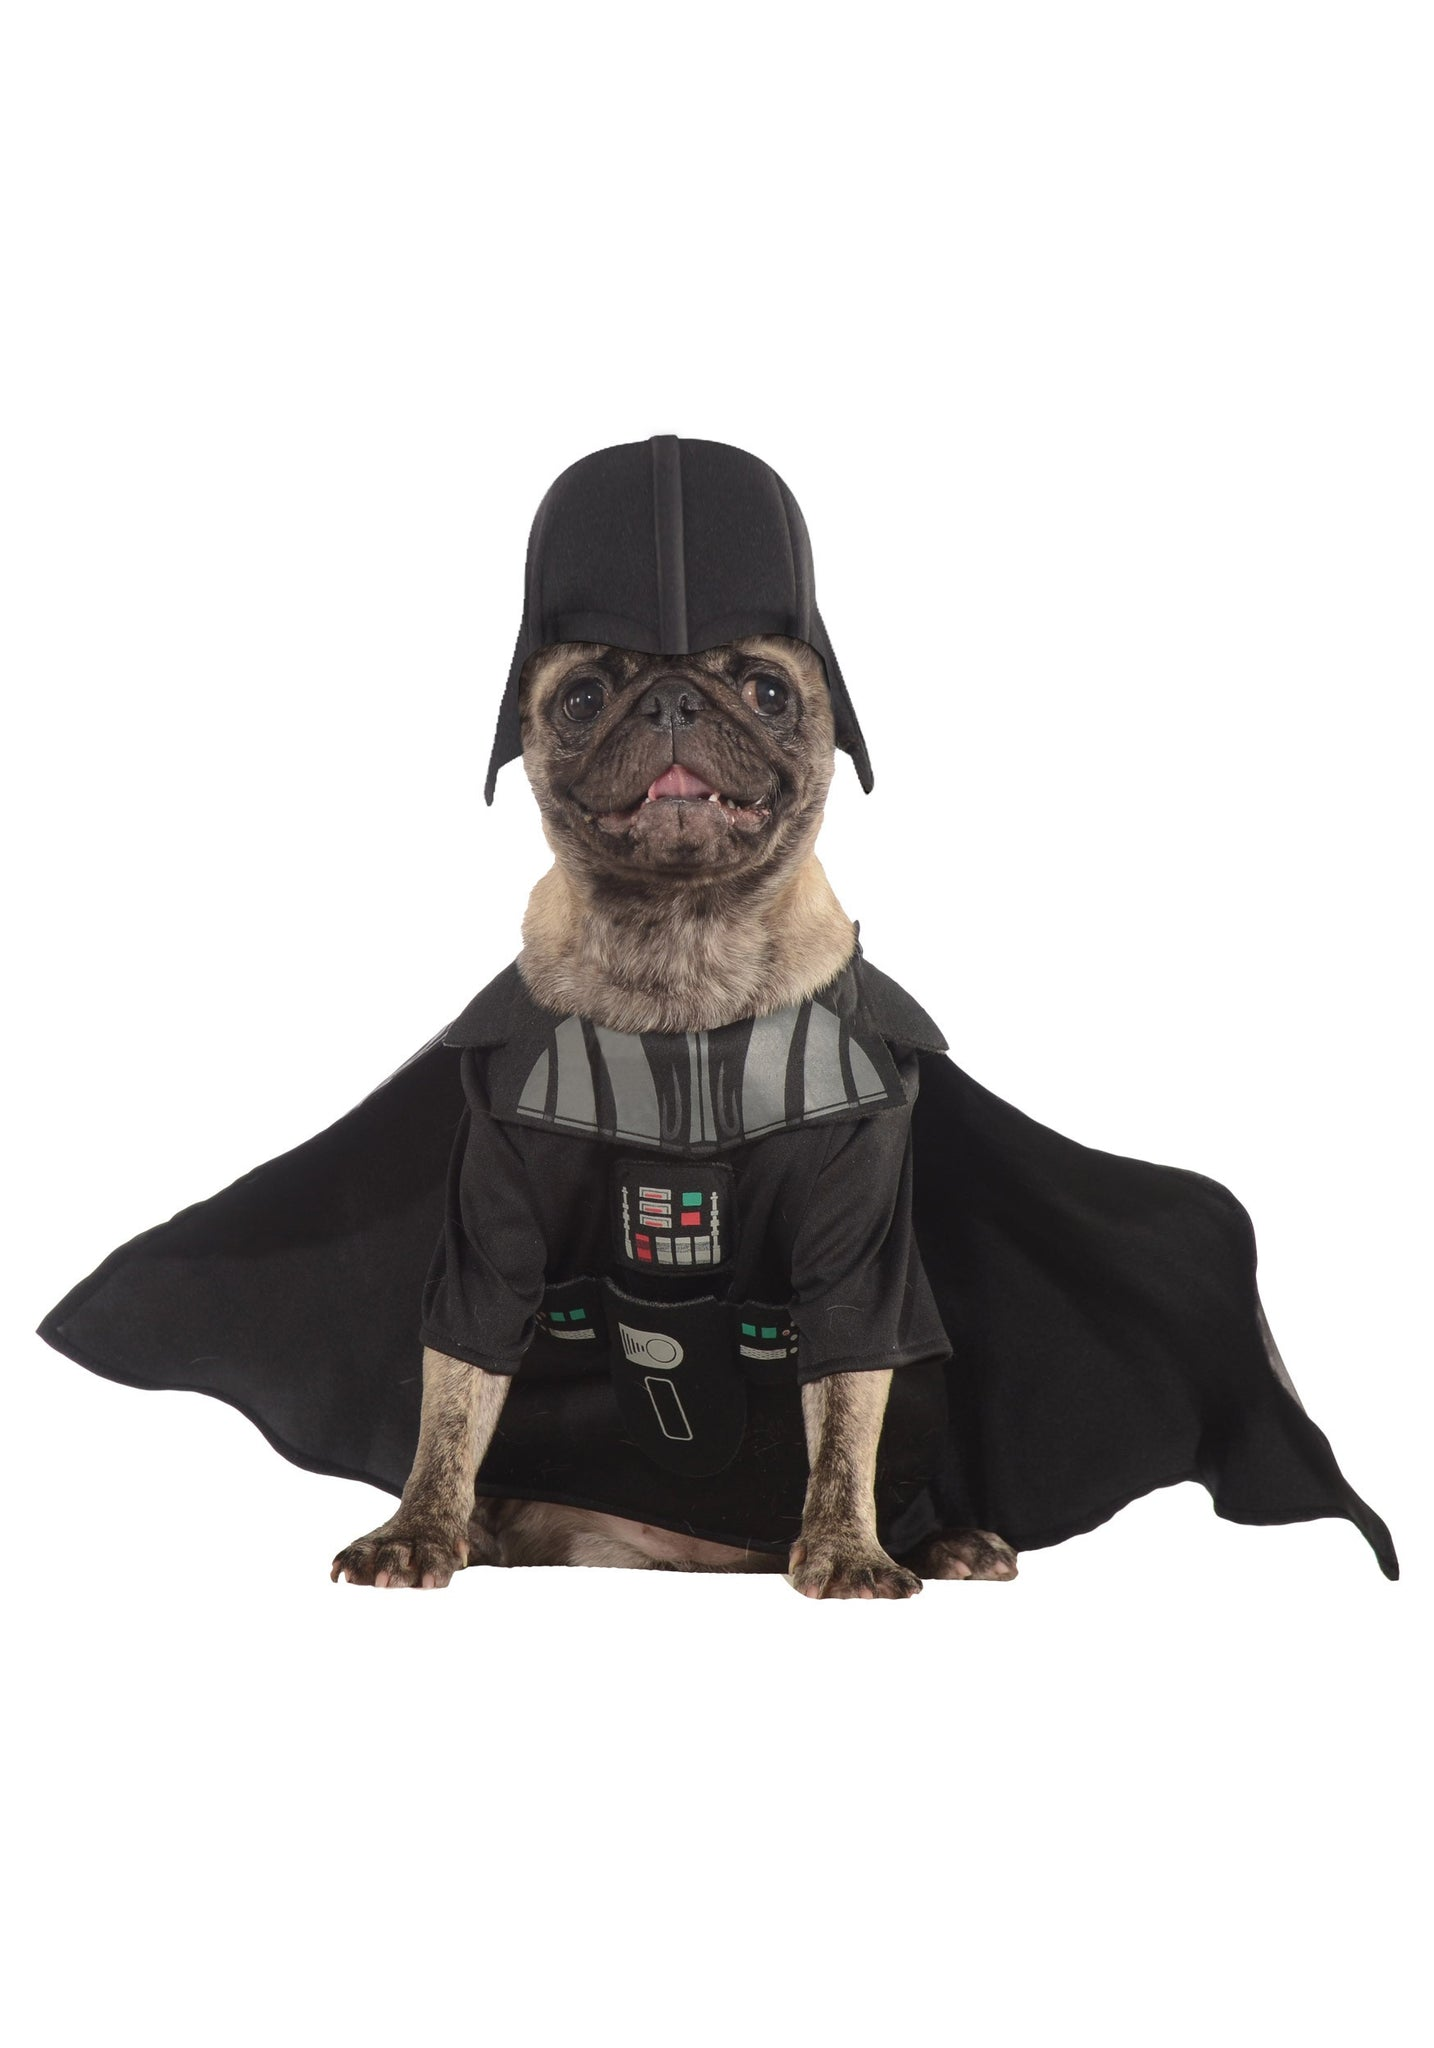 DARTH VADER DELUXE PET COSTUME - SIZE L